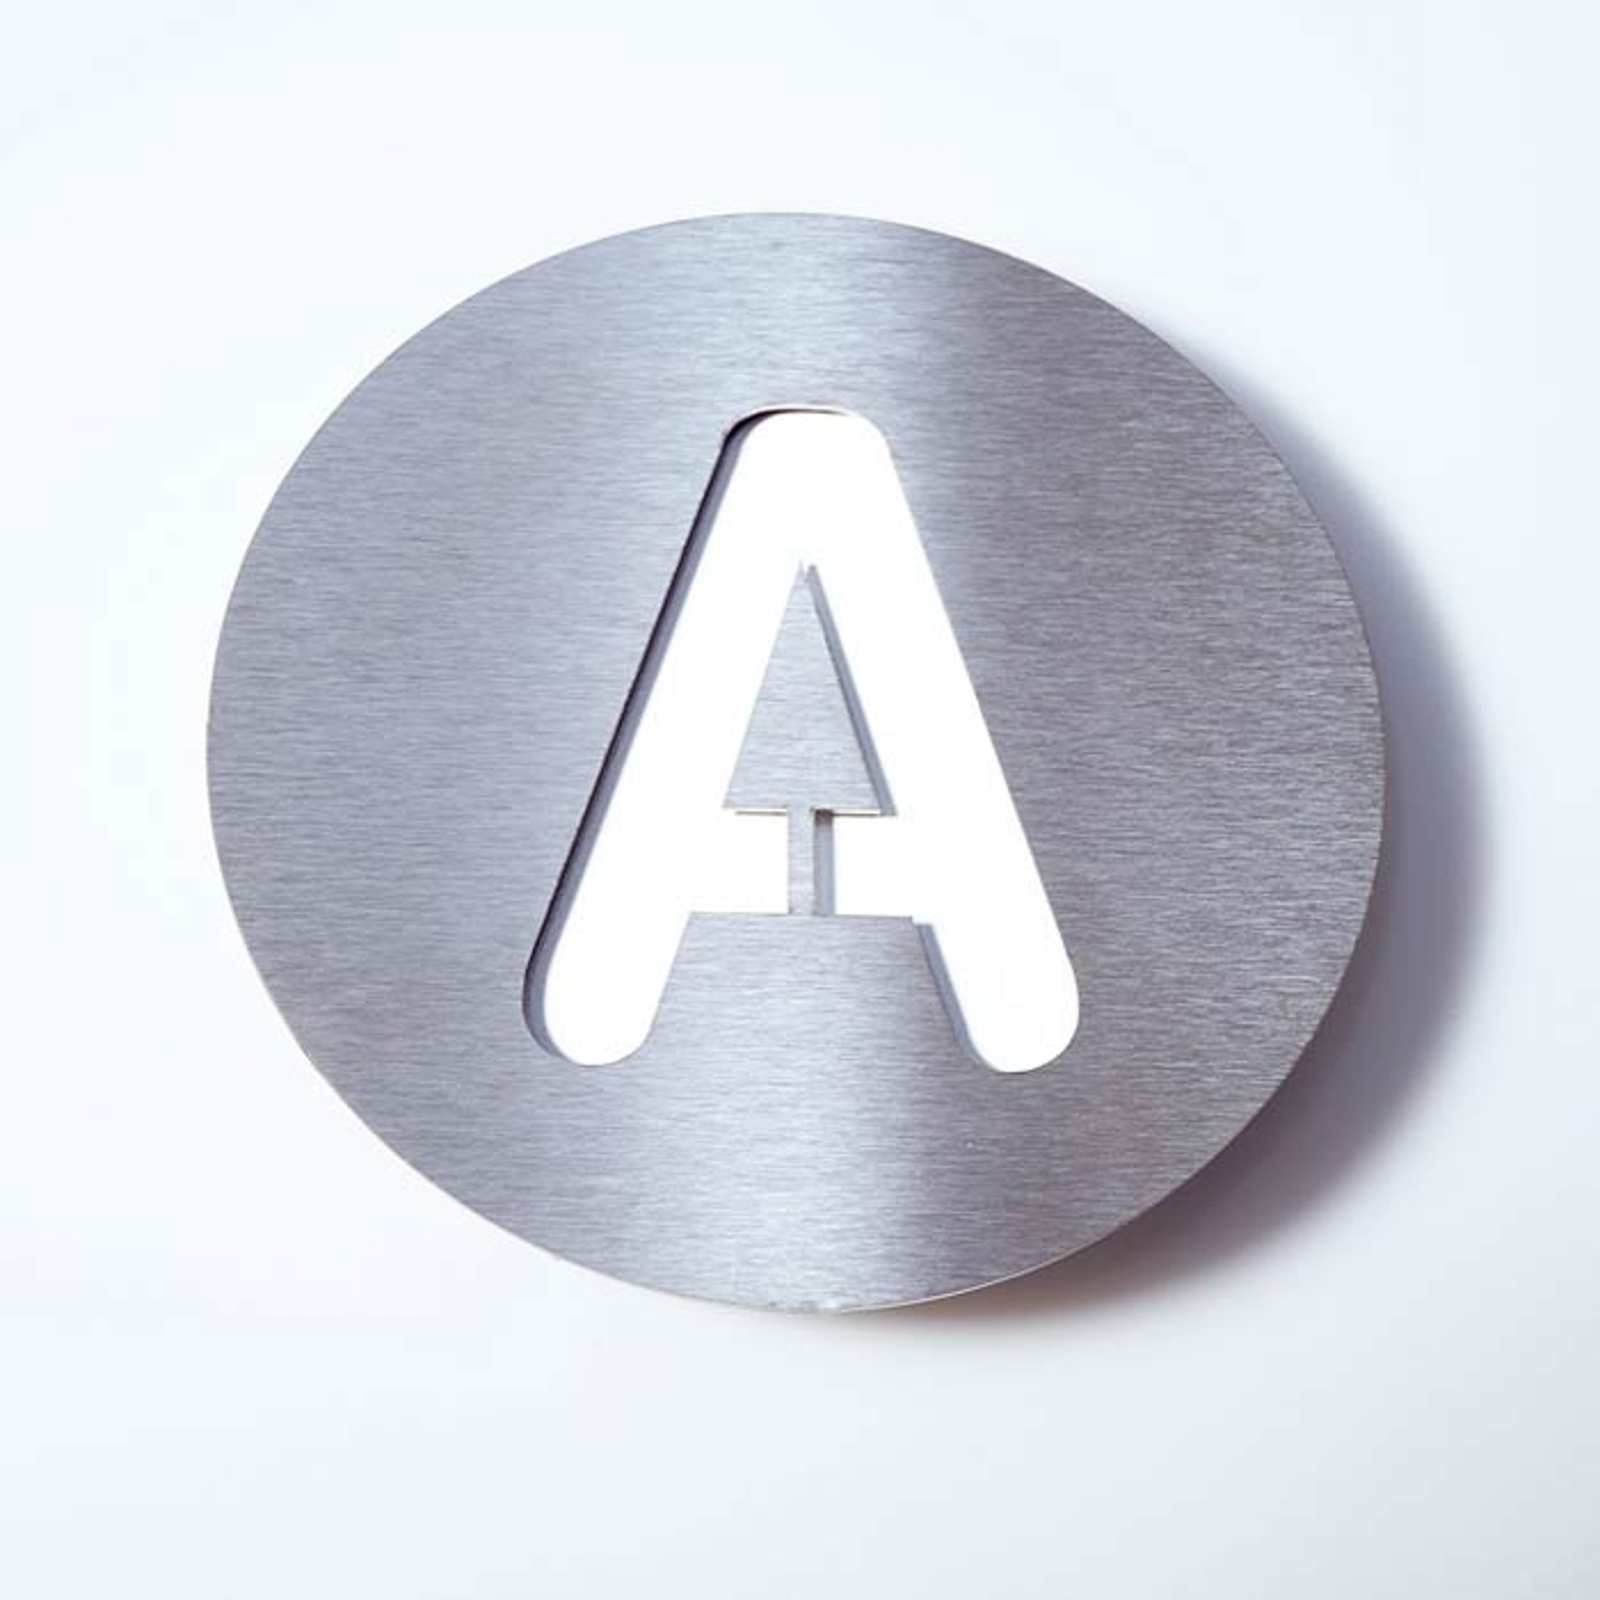 Round stainless steel house number_1057091_1